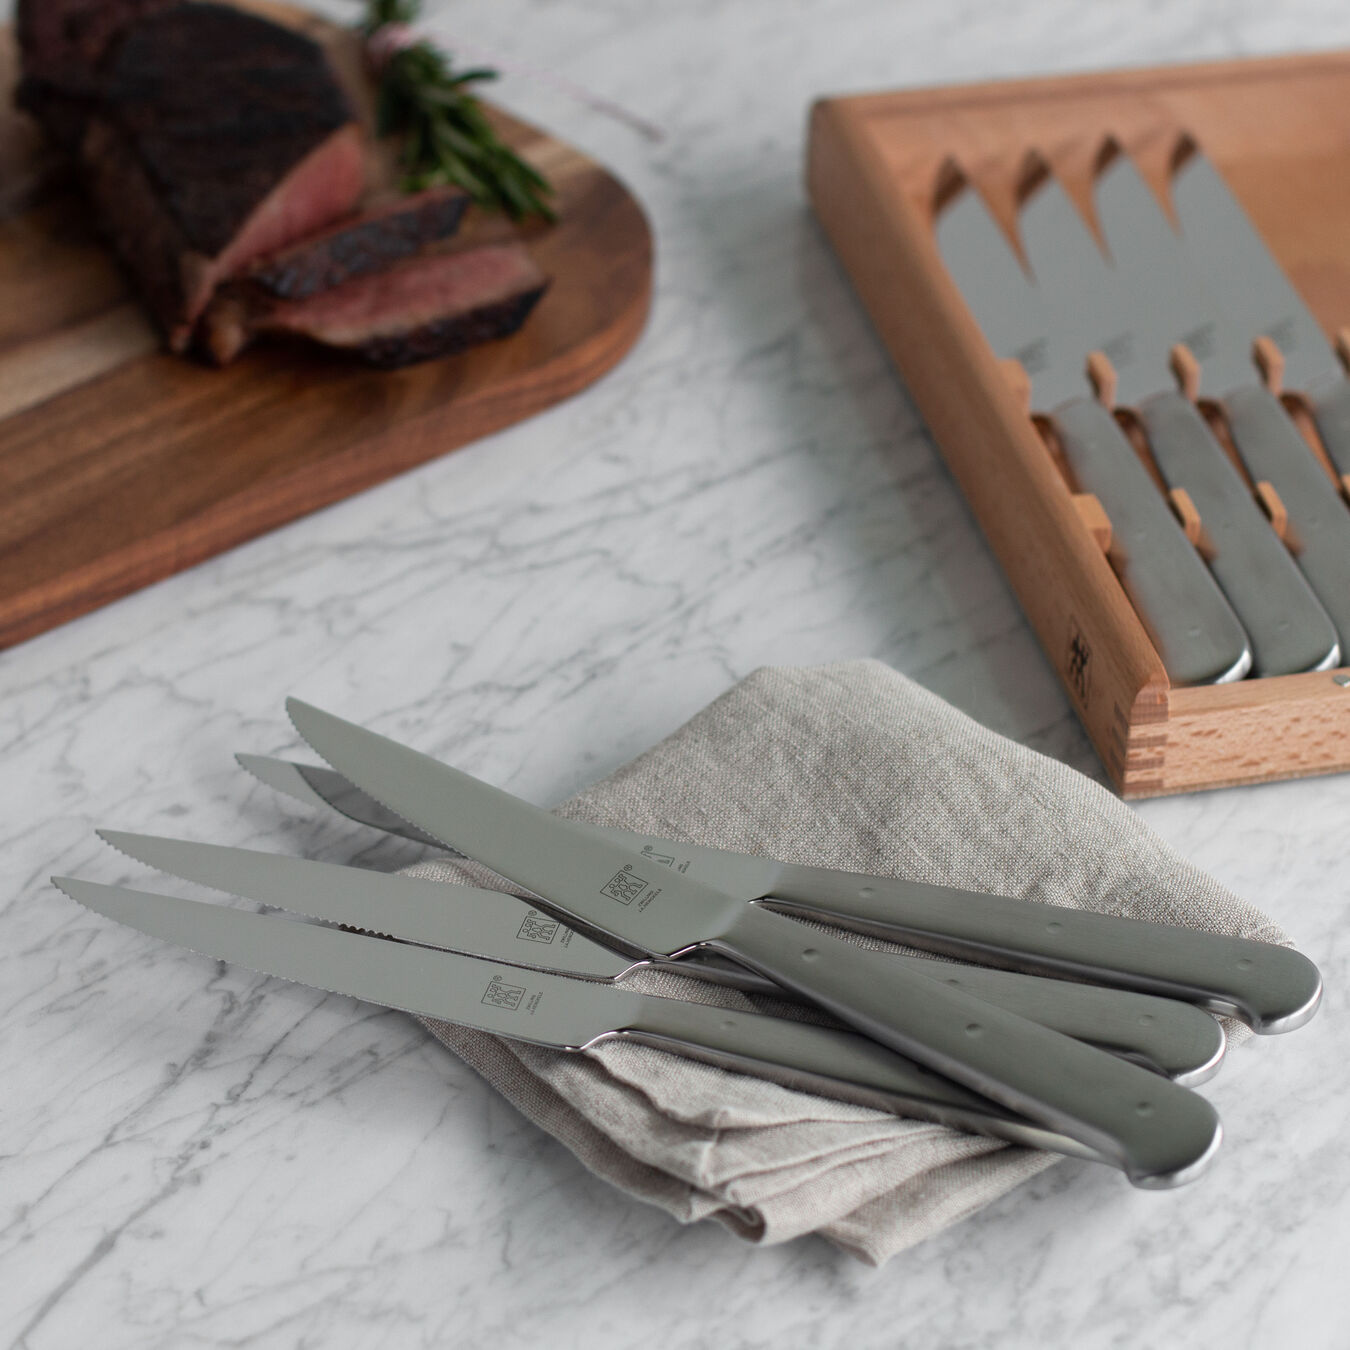 8-pc Stainless Steel Steak Knife Set With Wood Presentation Box,,large 4